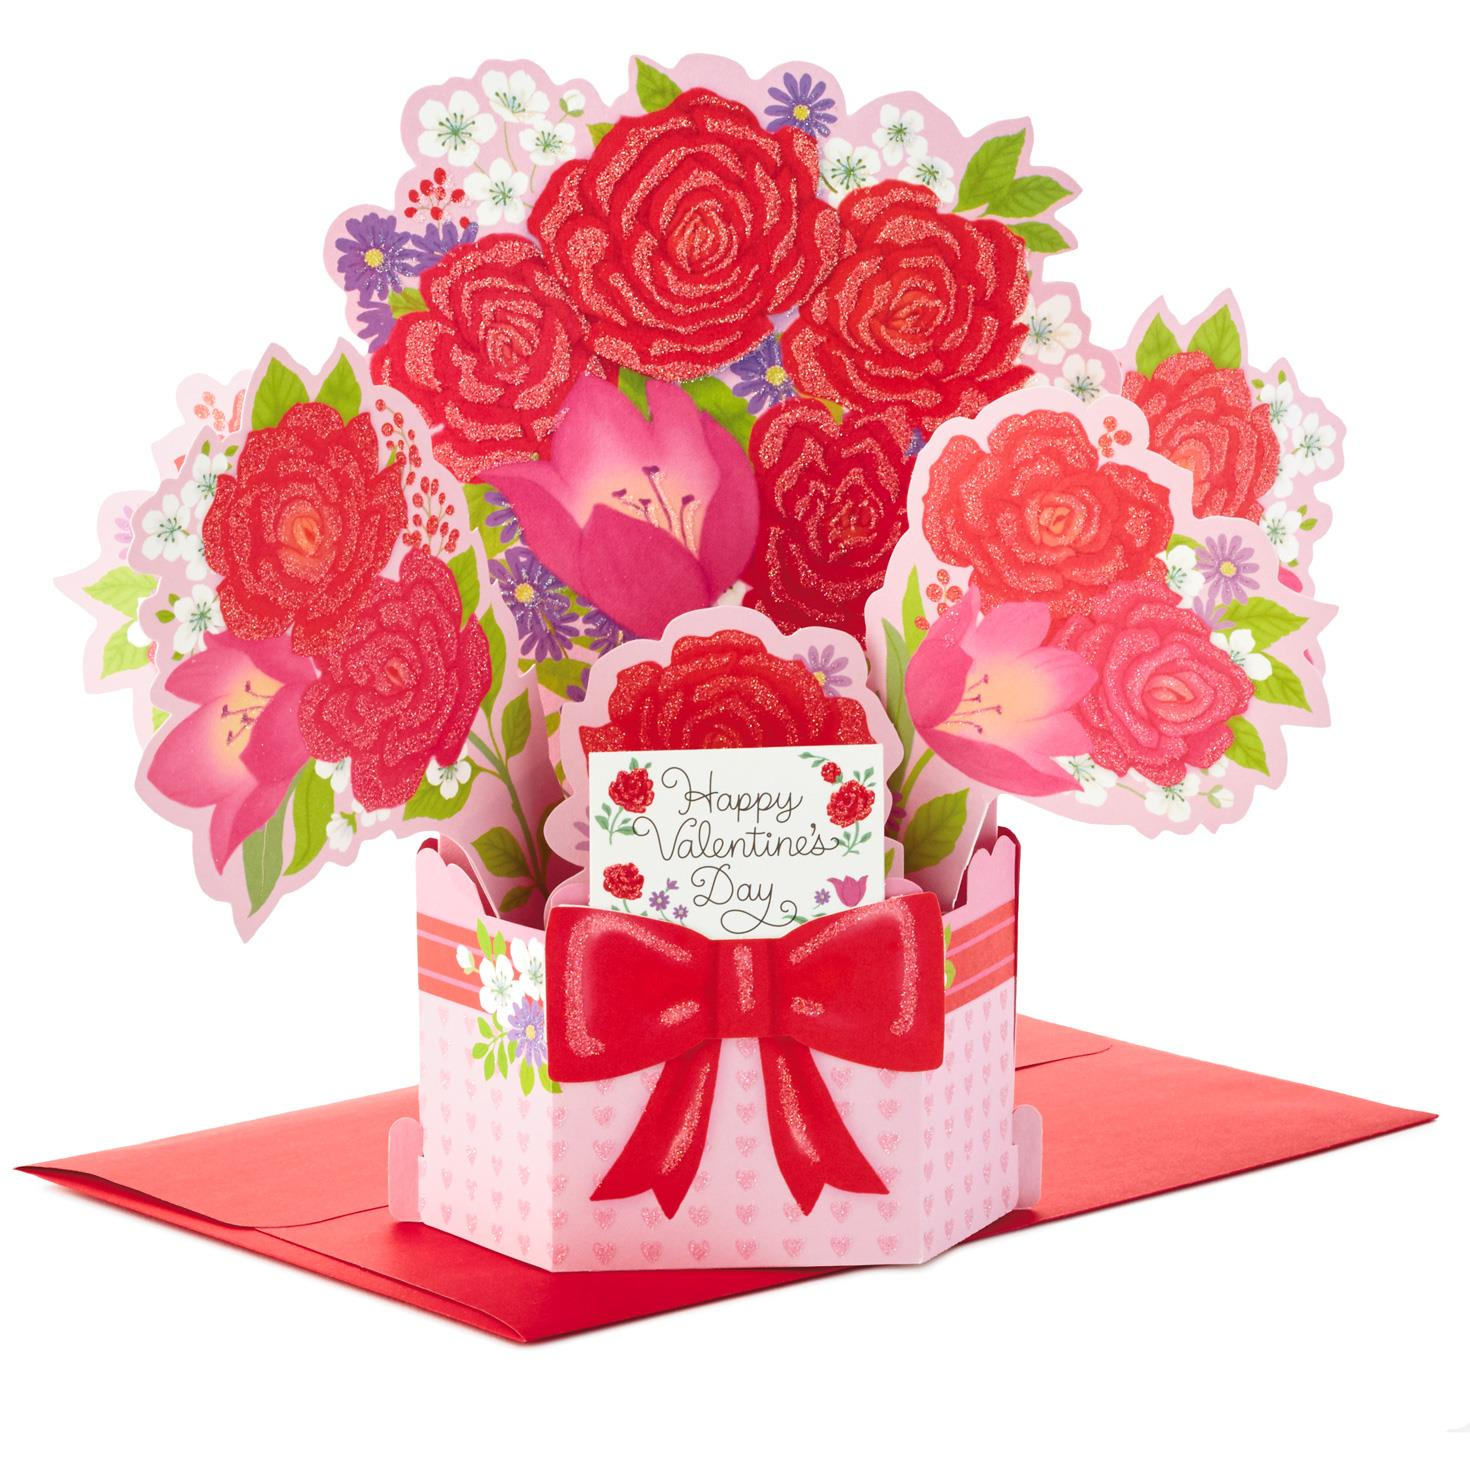 Flower bouquet pop up valentine 39 s day card greeting Hallmark flowers